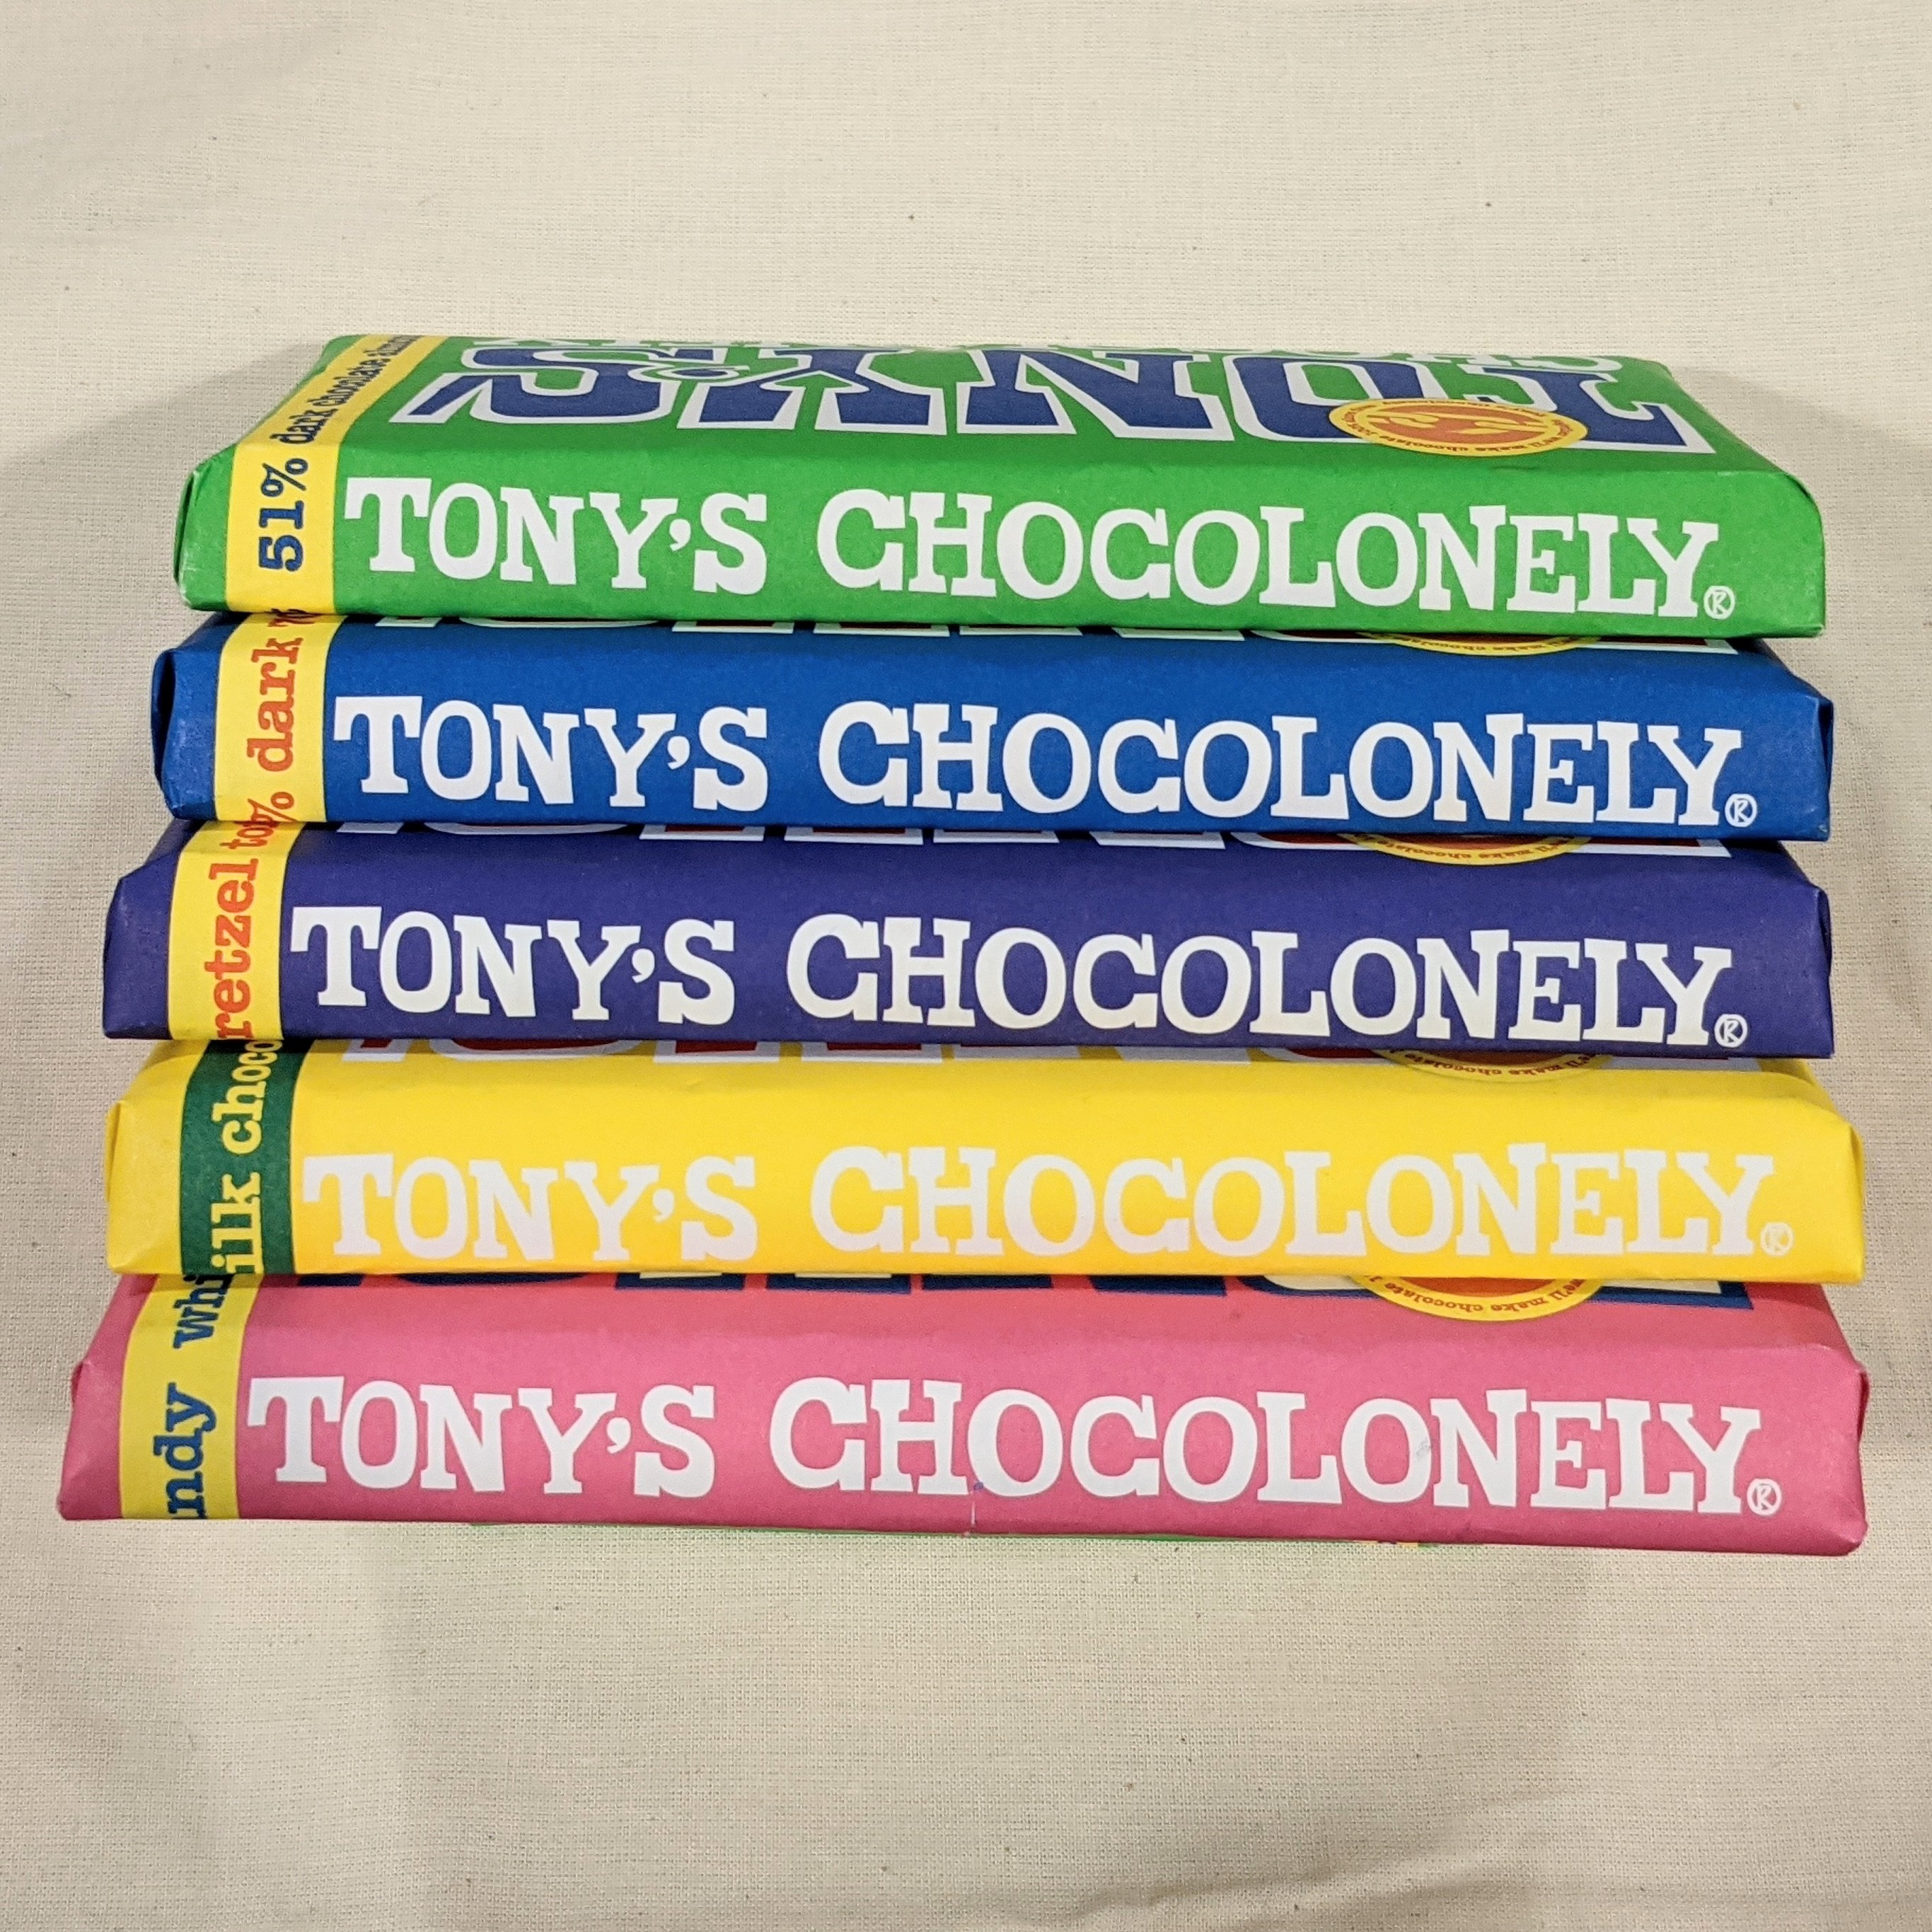 Chocolate bar (180g) by Tony's Chocolonely (Faitrade)